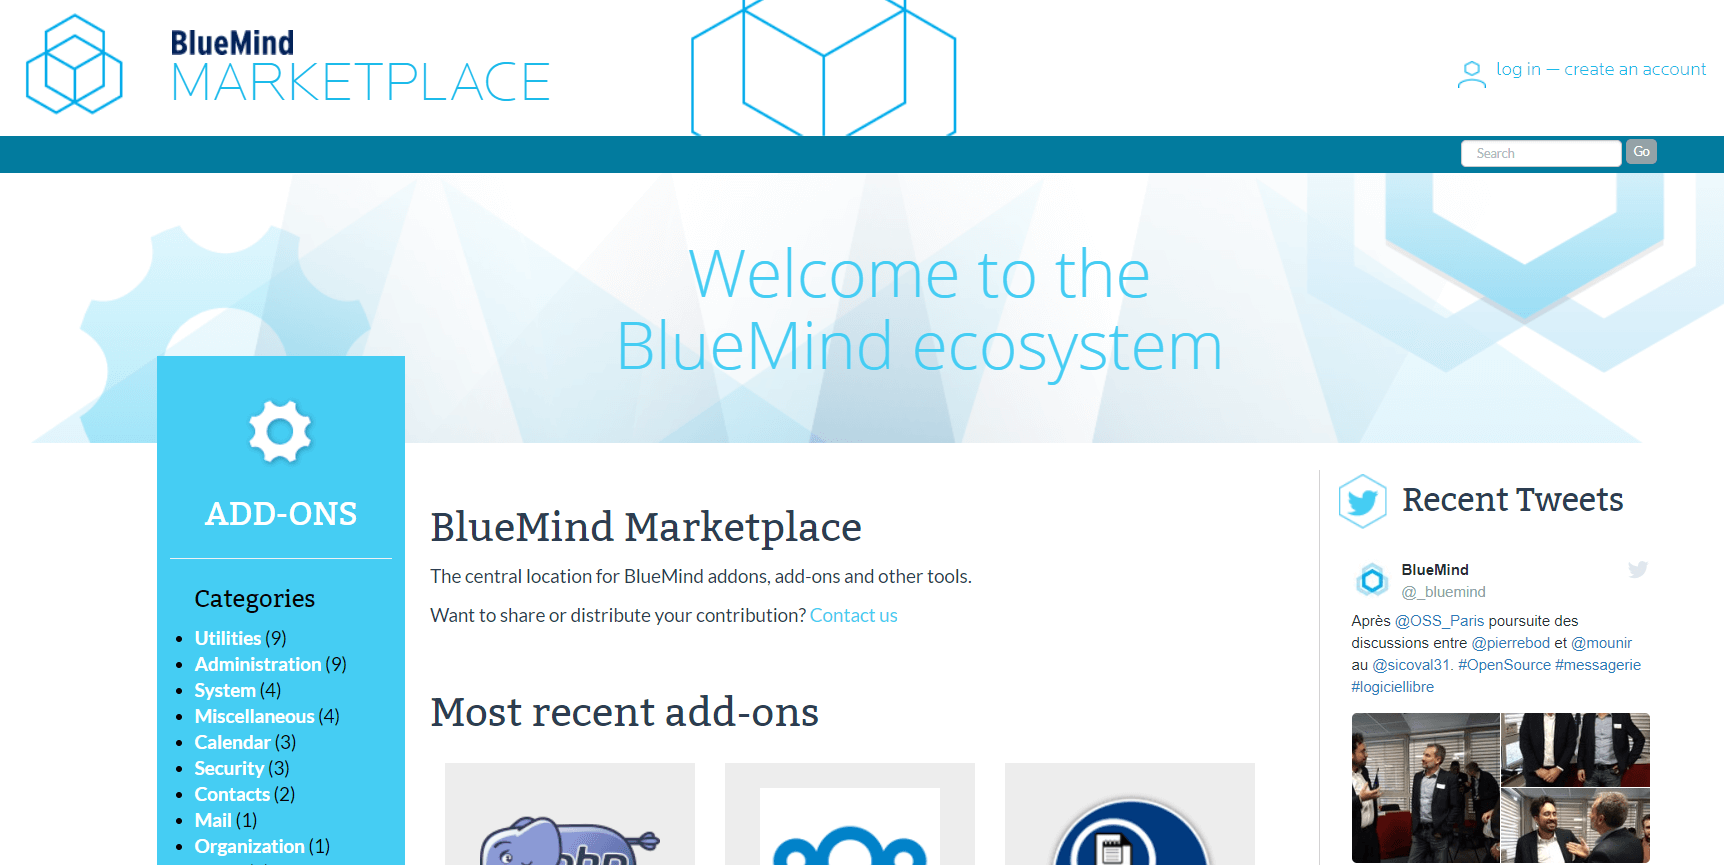 BlueMind Marketplace